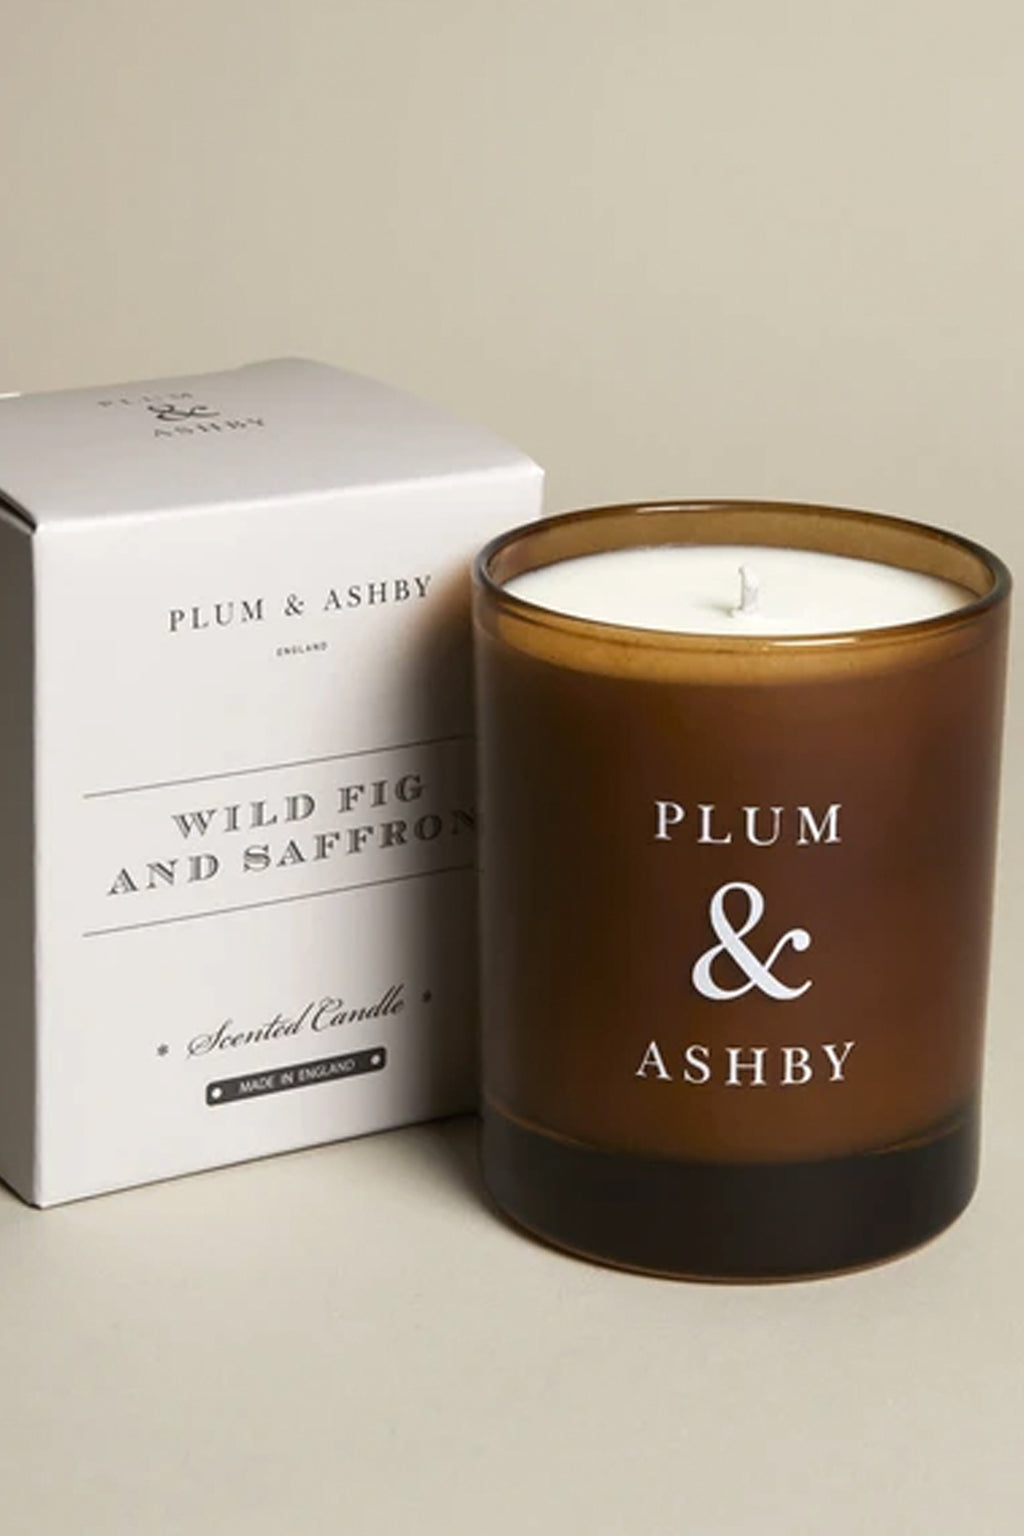 Plum & Ashby Wild Fig & Saffron Candle - The Mercantile London